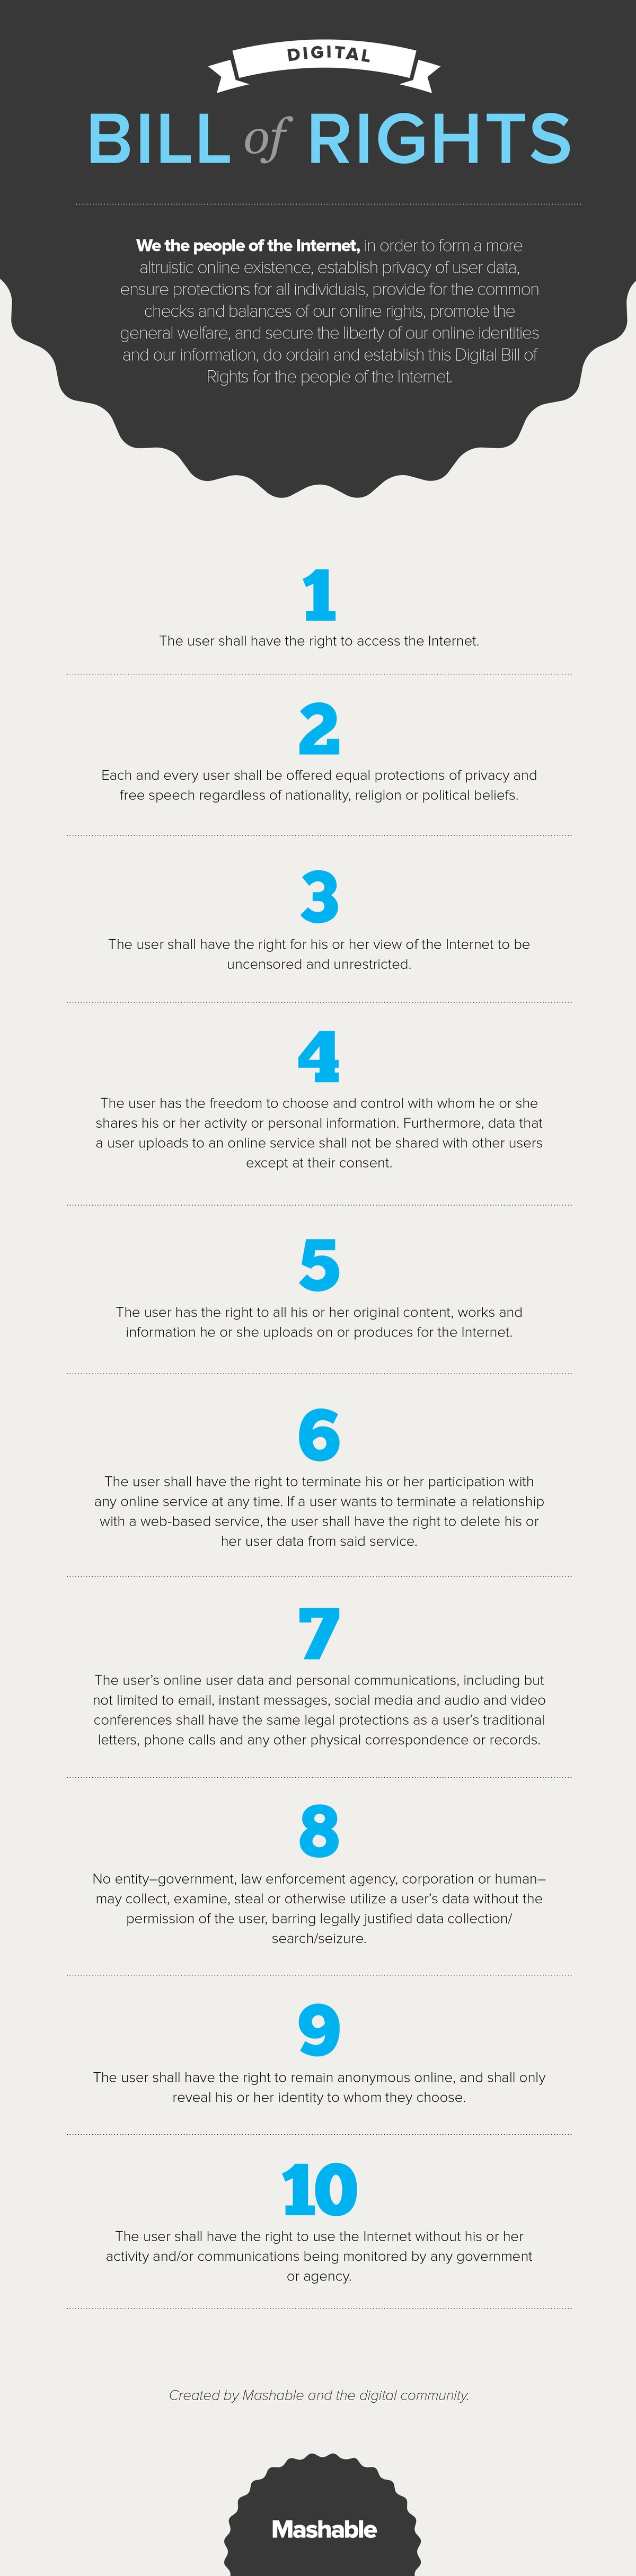 Explore Mashable's Crowdsourced Digital Bill of Rights ...